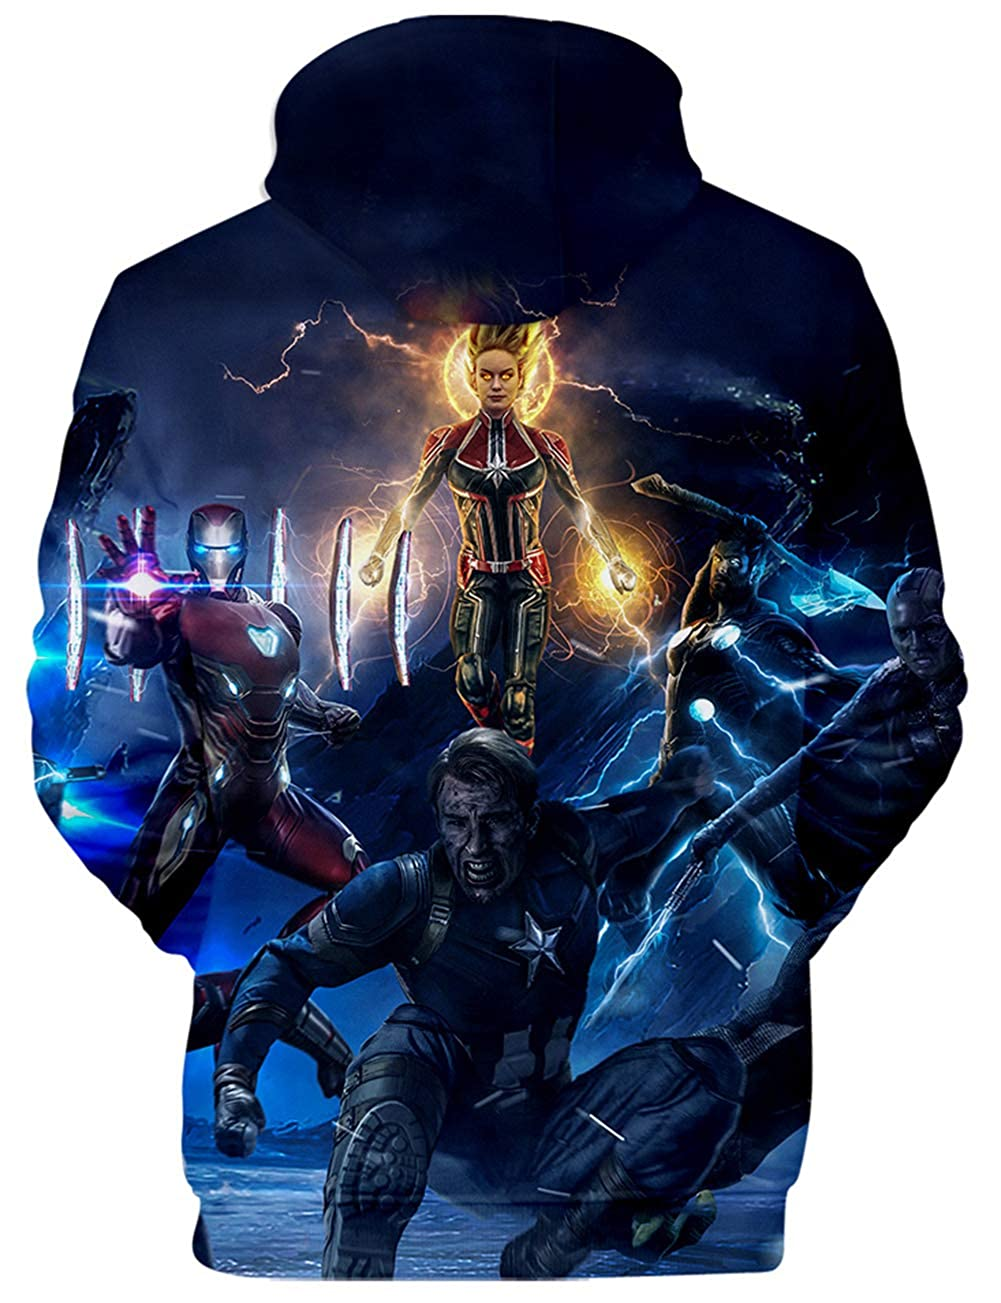 KamiraCoco Homme Avengers Endgame Sweat /à Capuche Quantum Realm Cosplay Manches Longues